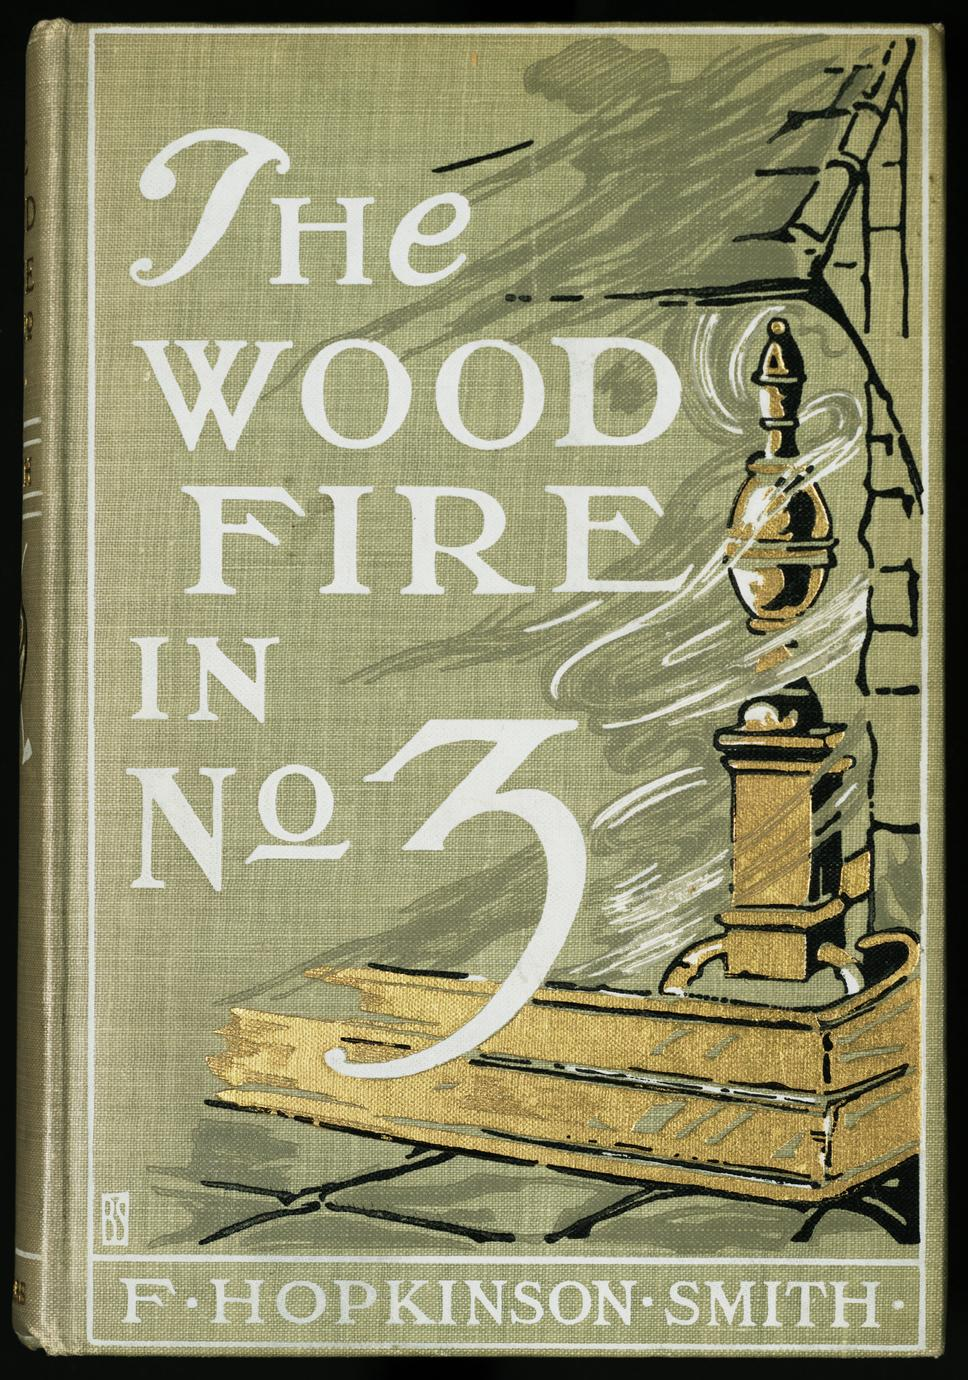 The wood fire in no. 3 (1 of 3)